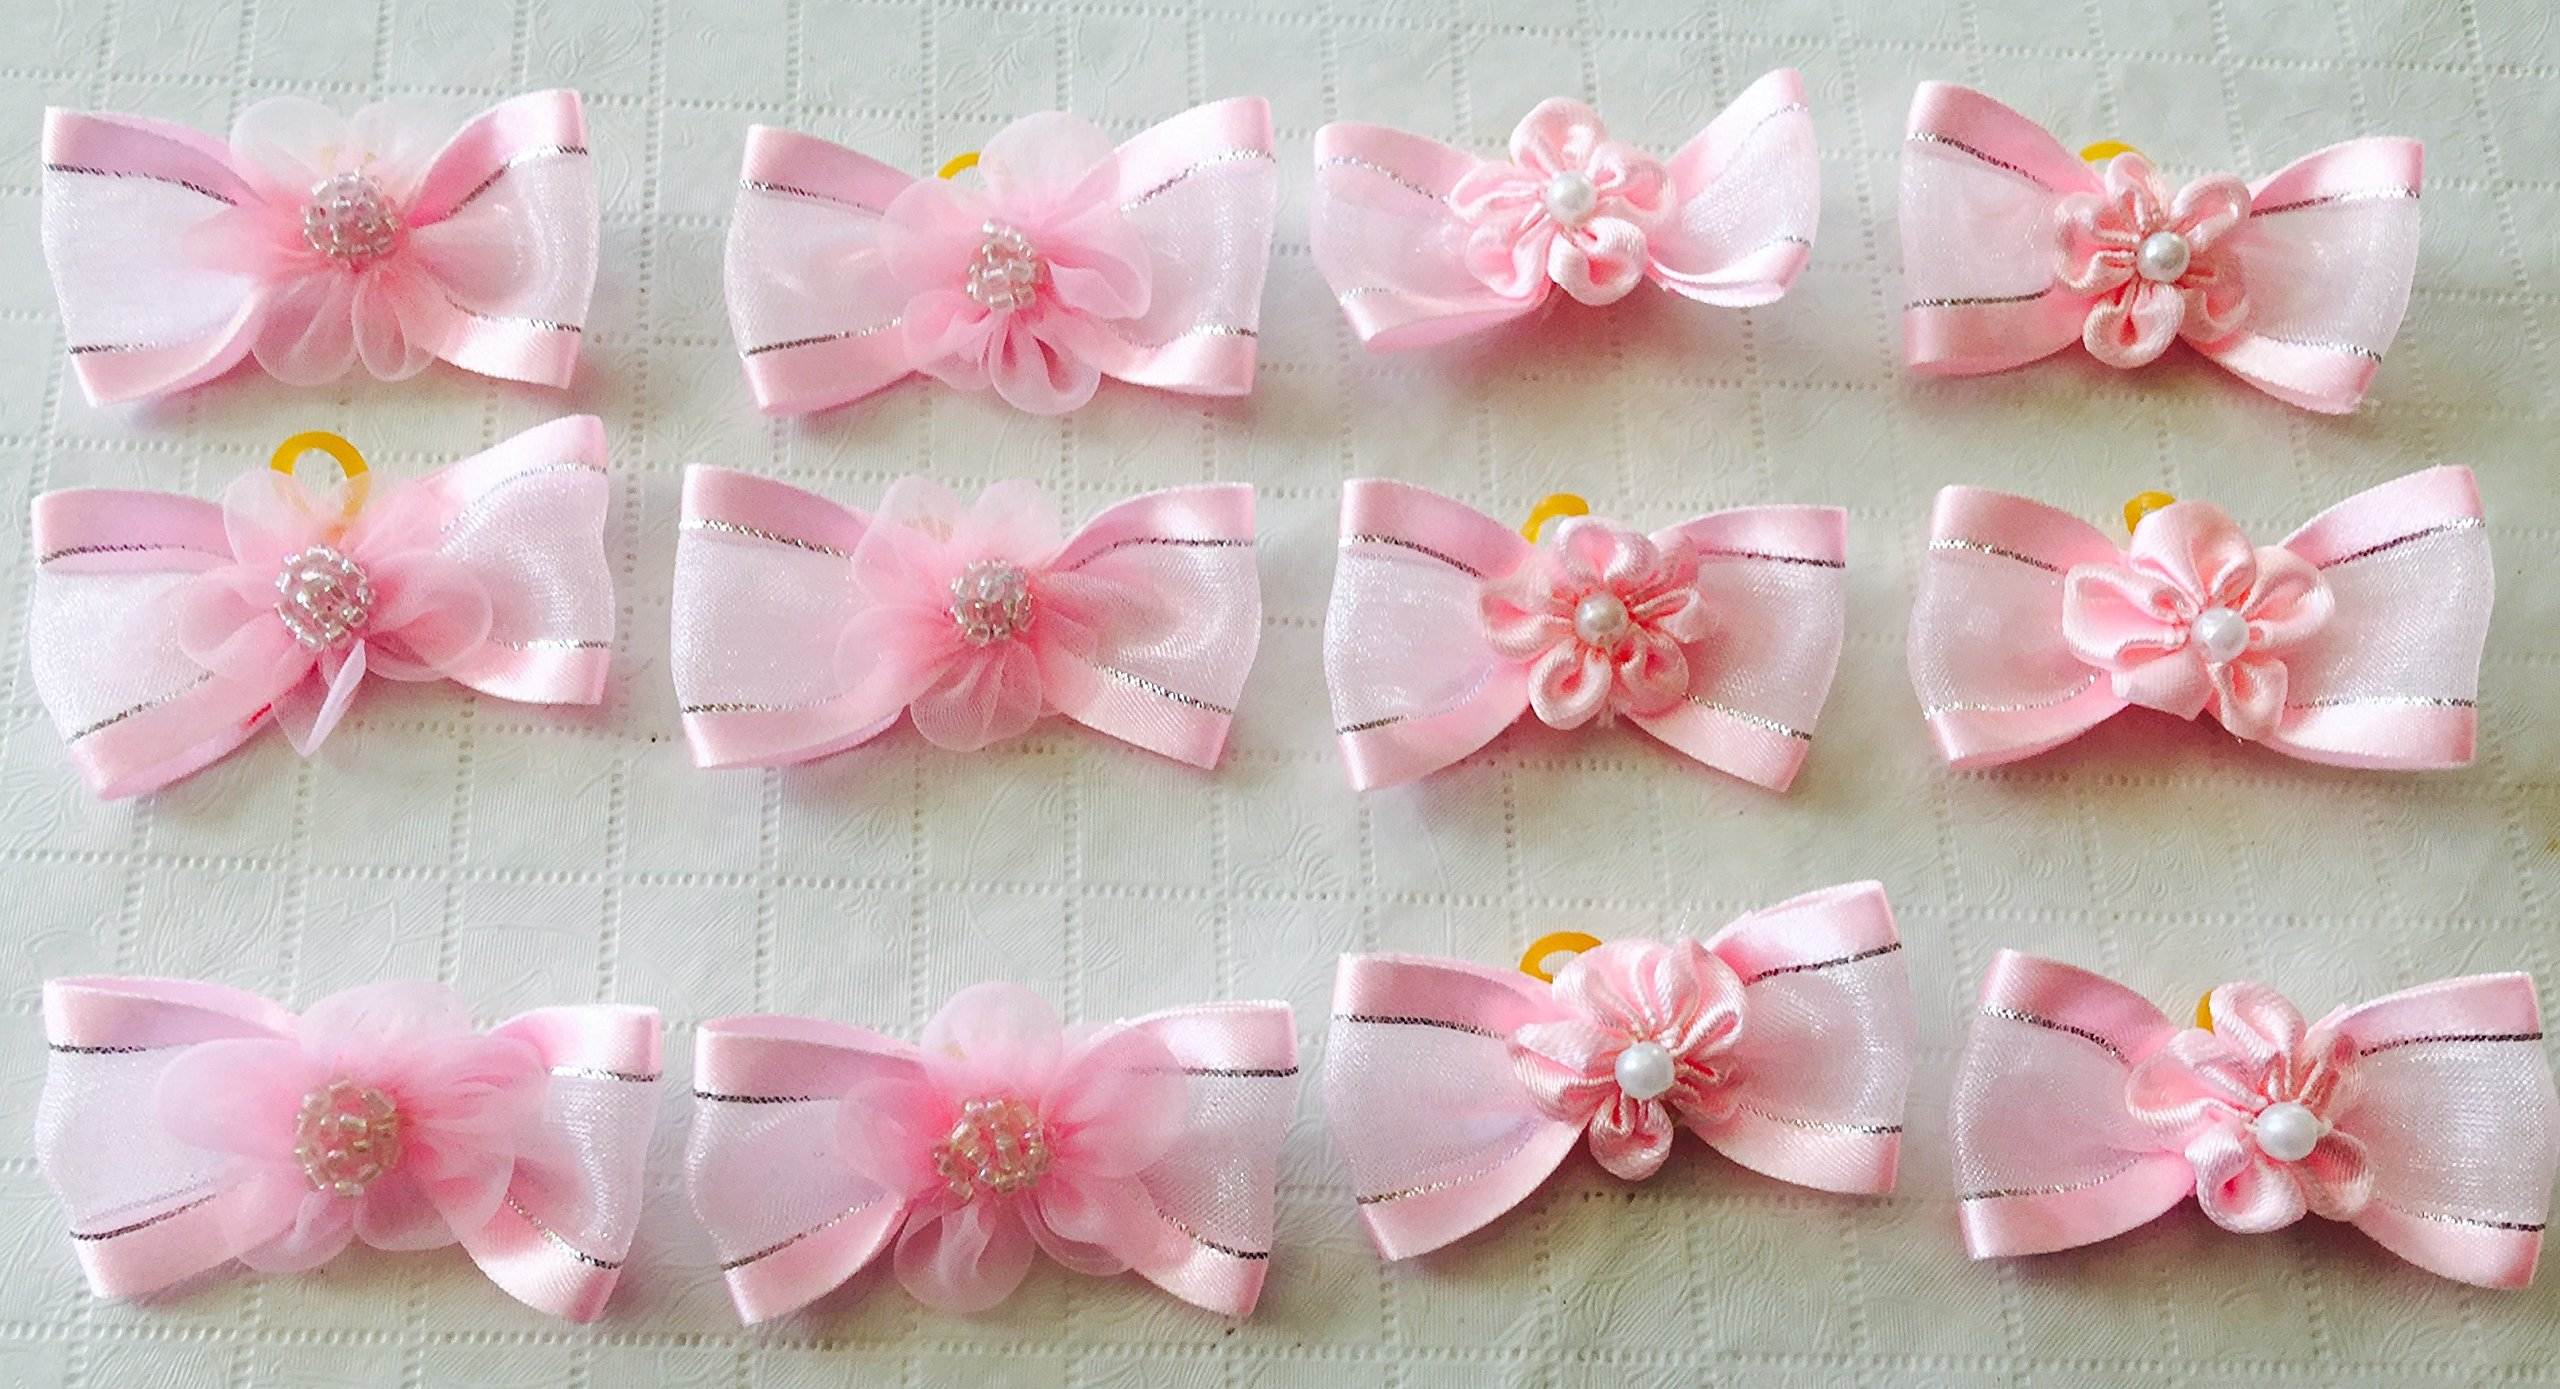 Pack of 30 Dog Hair Bows - Pink Butterfly Bows with cute flower and Bead